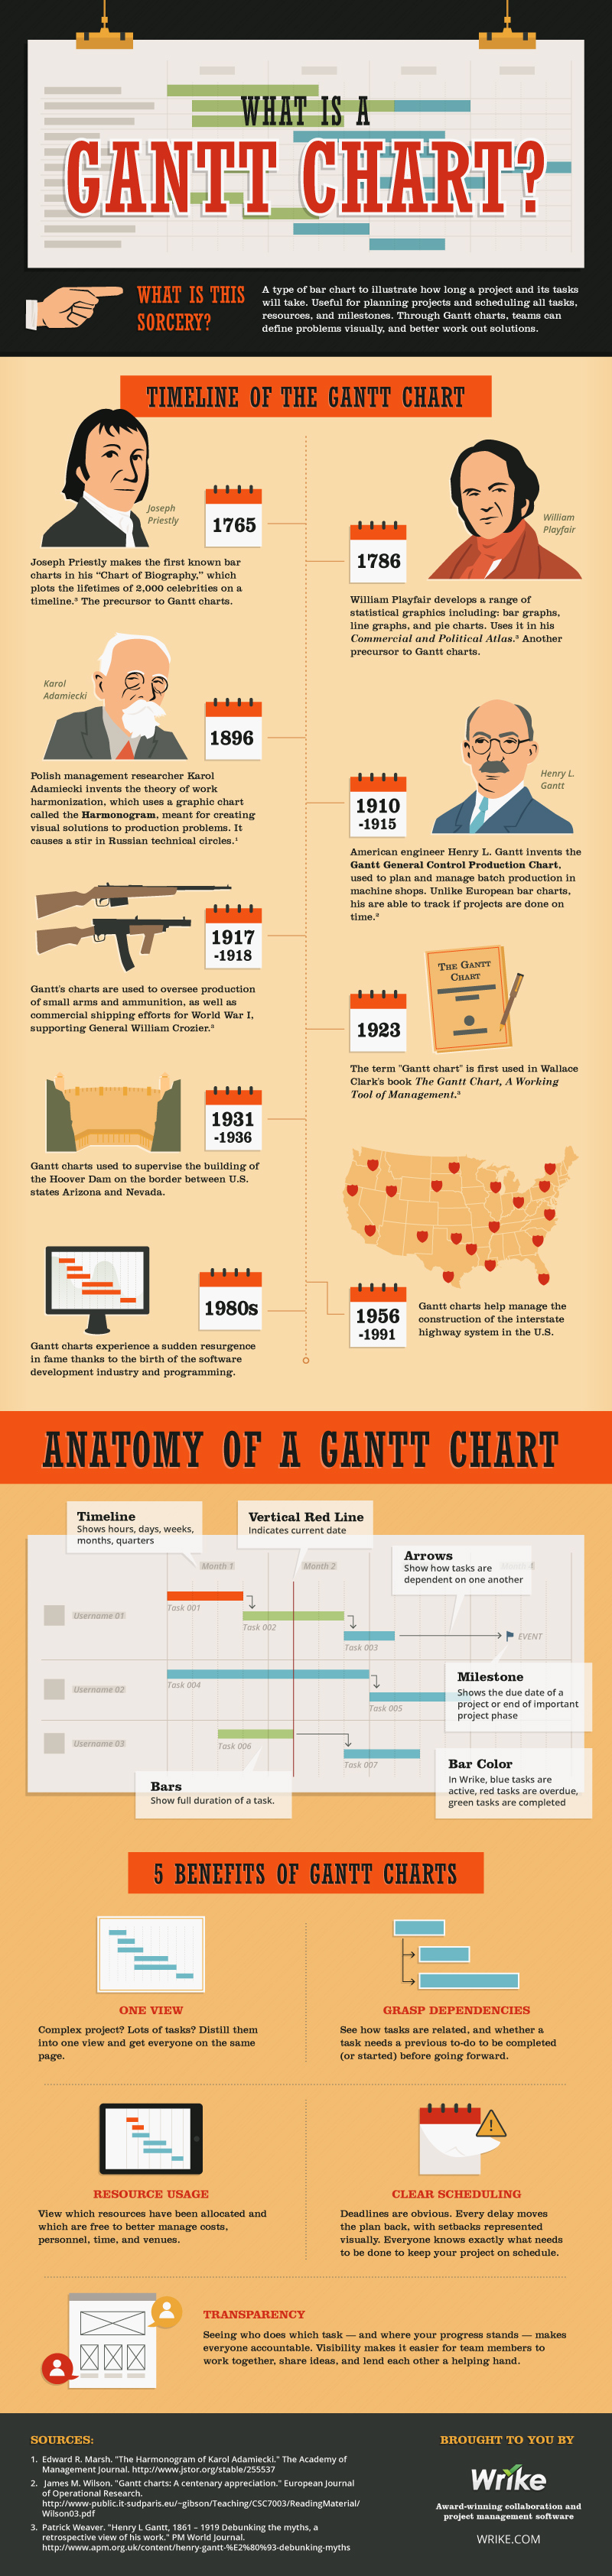 What is a Gantt Chart? (Infographic)